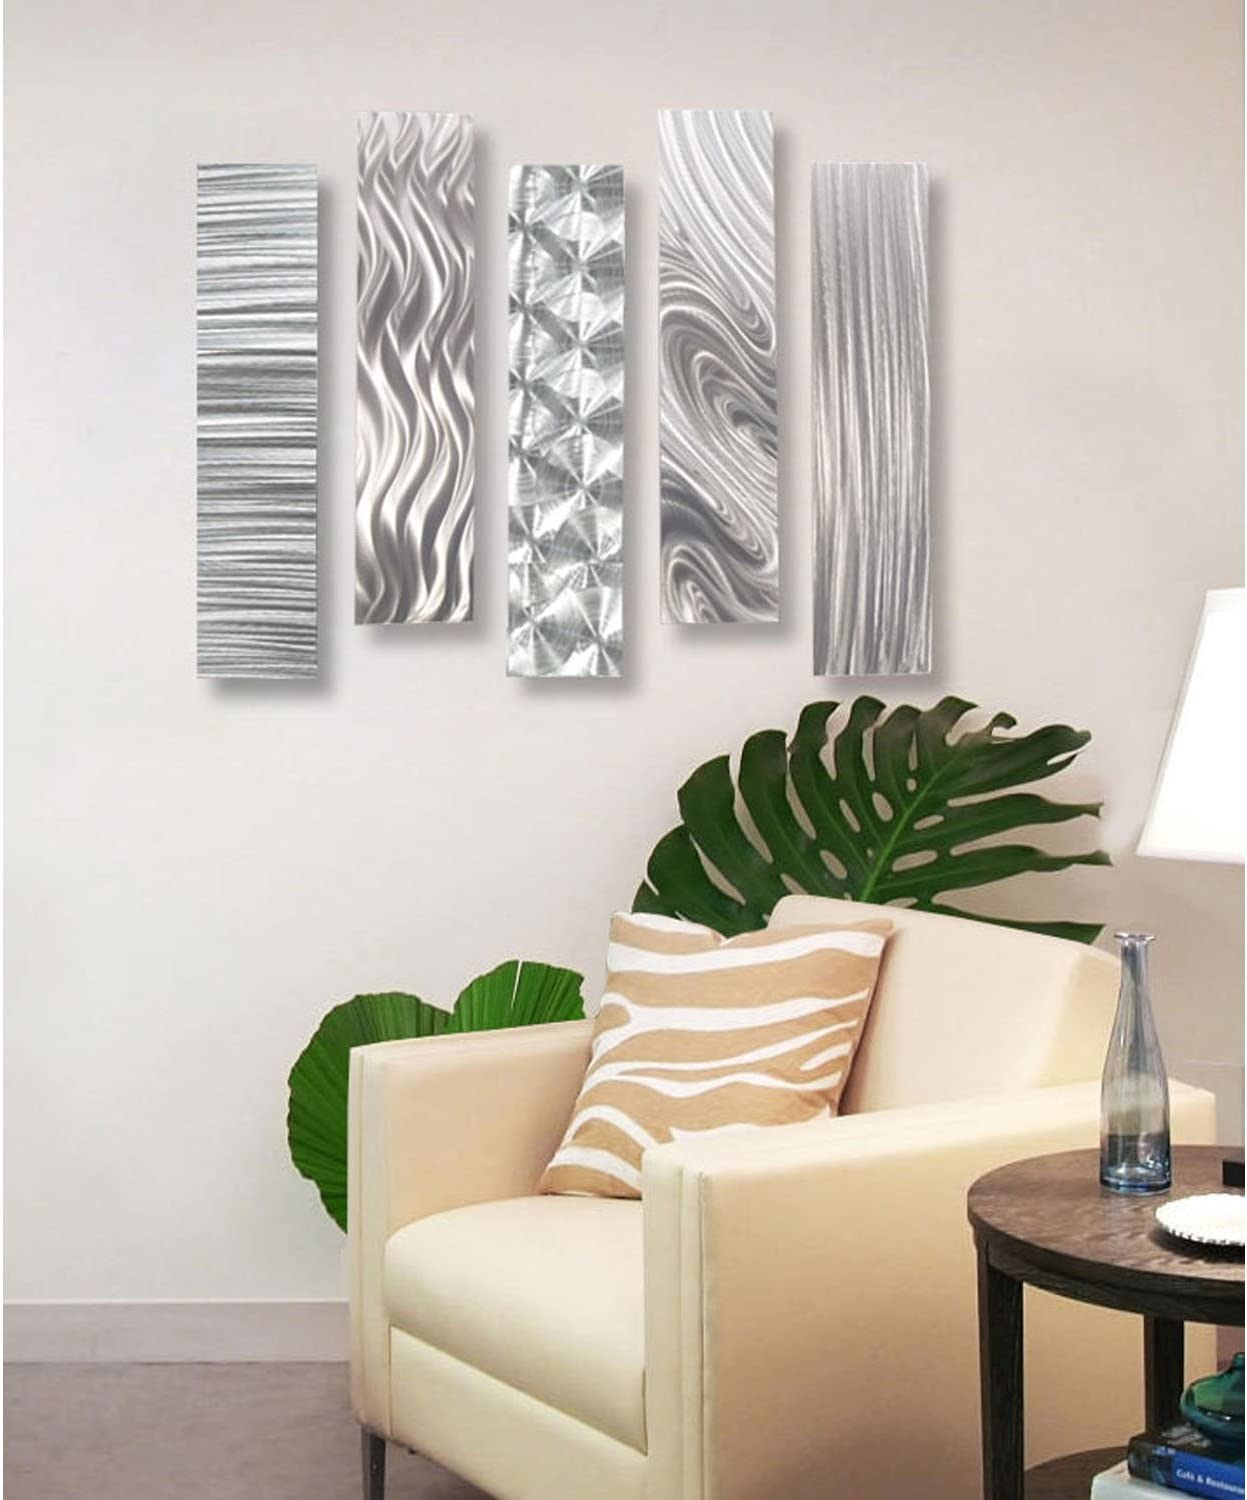 Selling and selling Statements2000 Silver Metal Wall Art Decor Five Max 62% OFF of 24